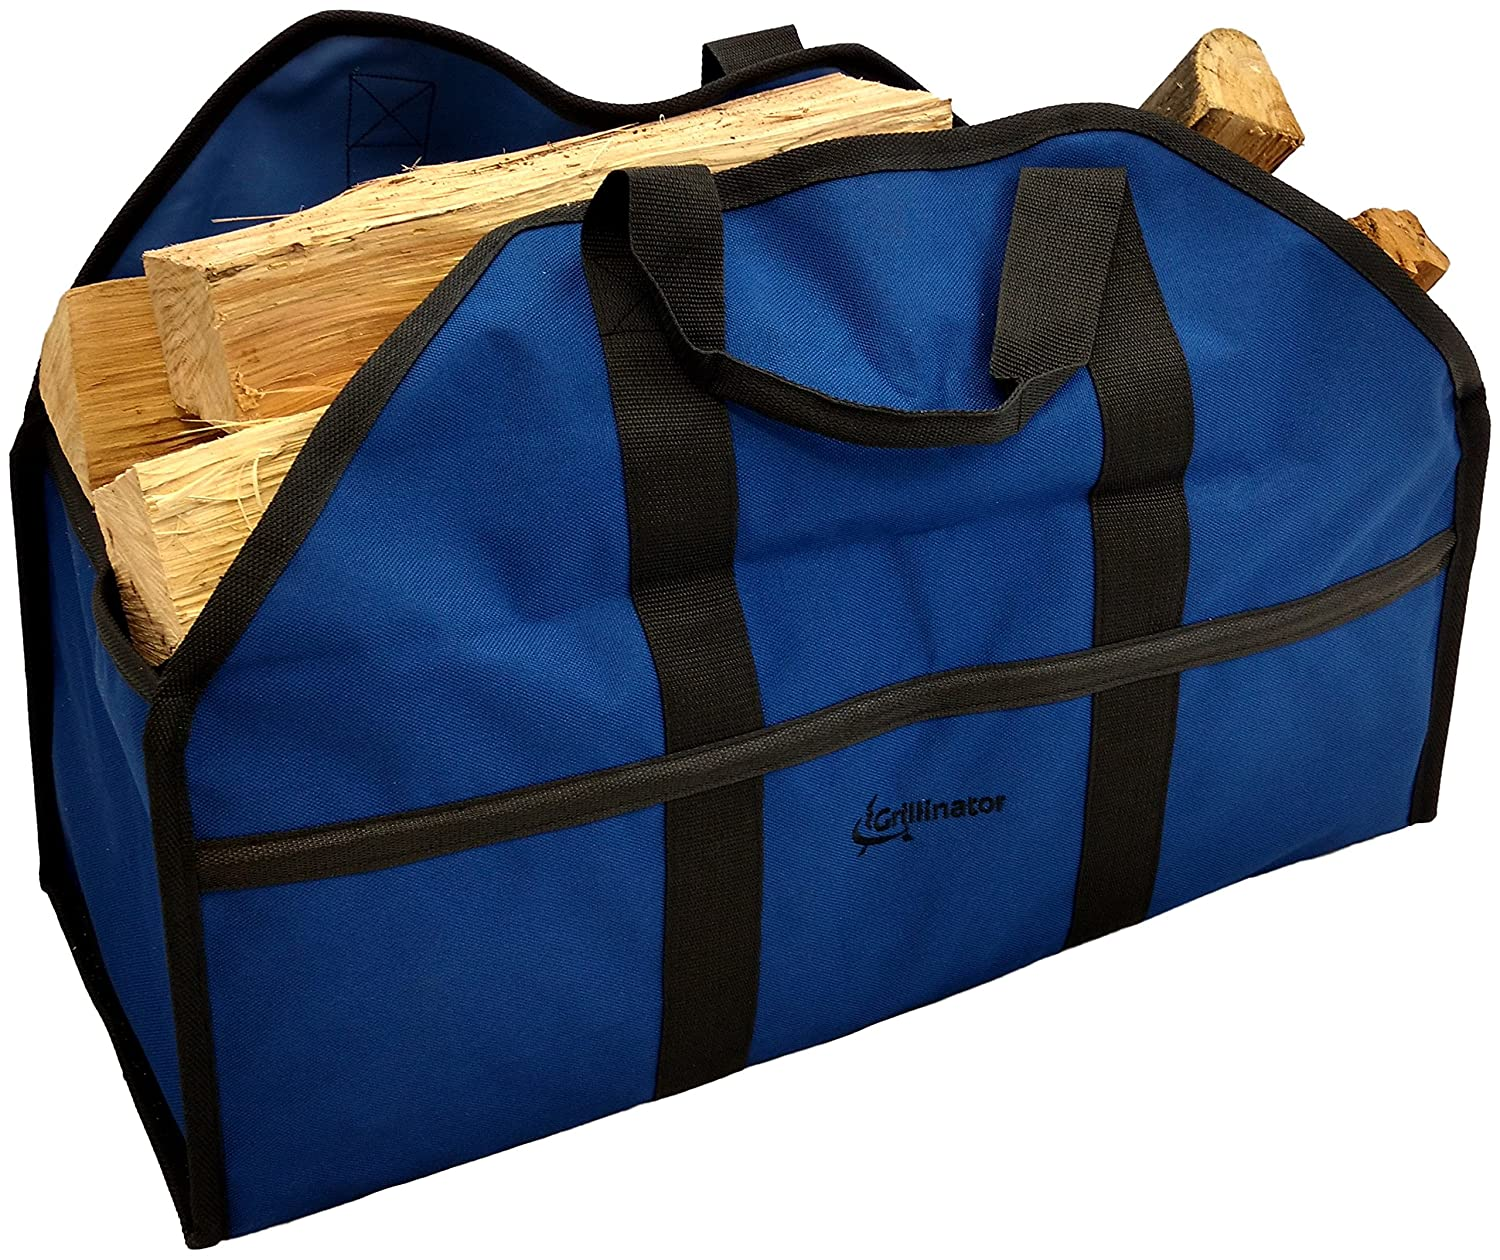 Leñ a Log Carrier Tote bolsa con la exclusiva grillinator